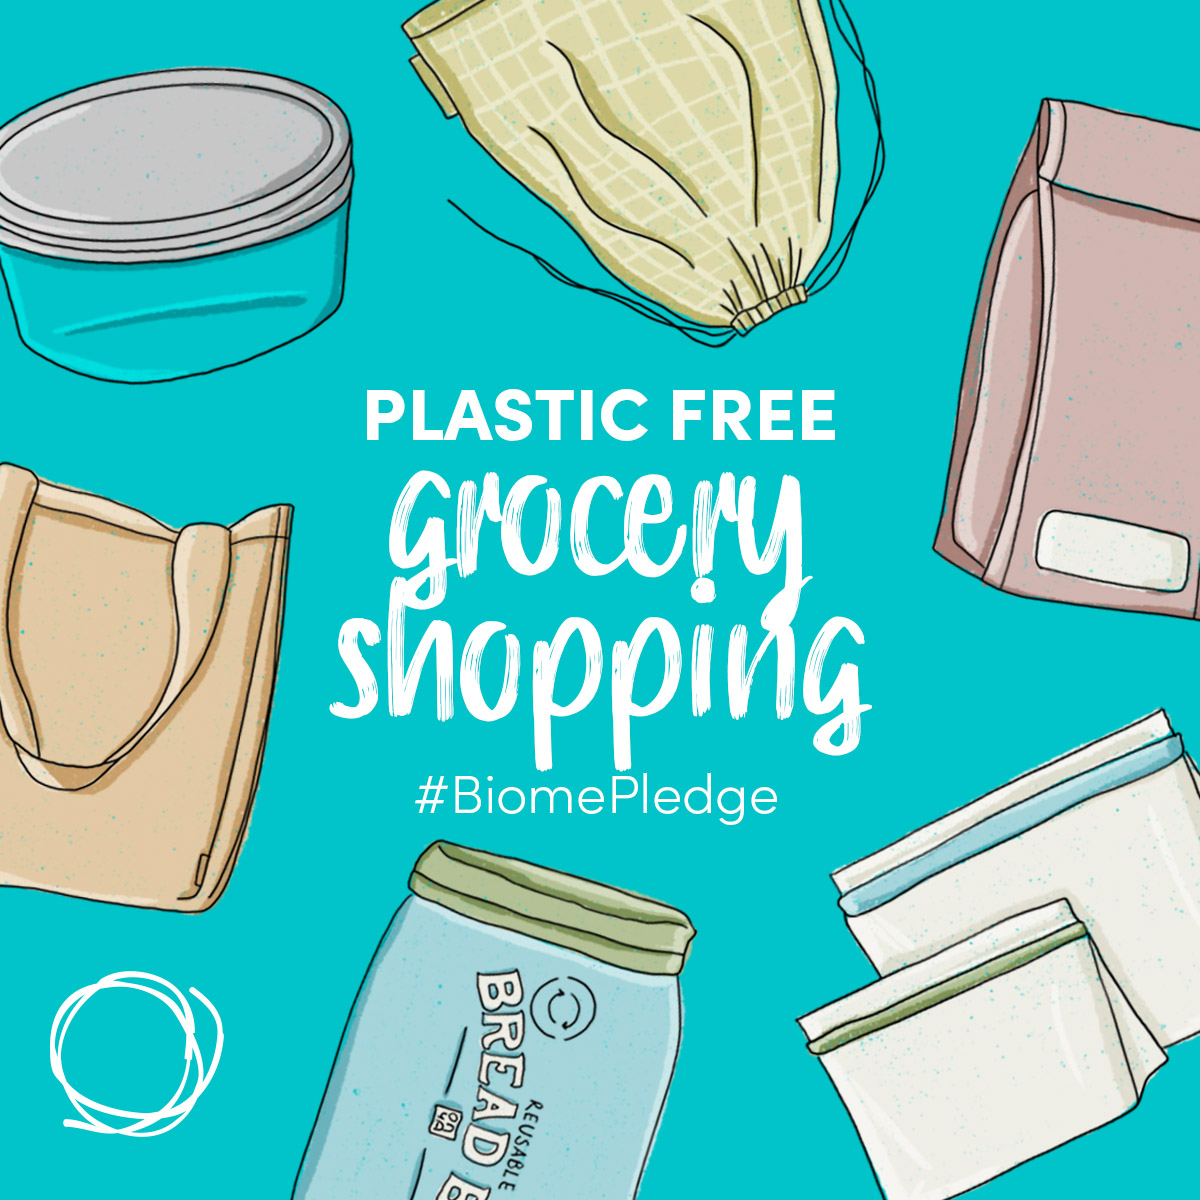 Plastic Free July - Plastic Free Grocery Shopping - Biome Eco Stores